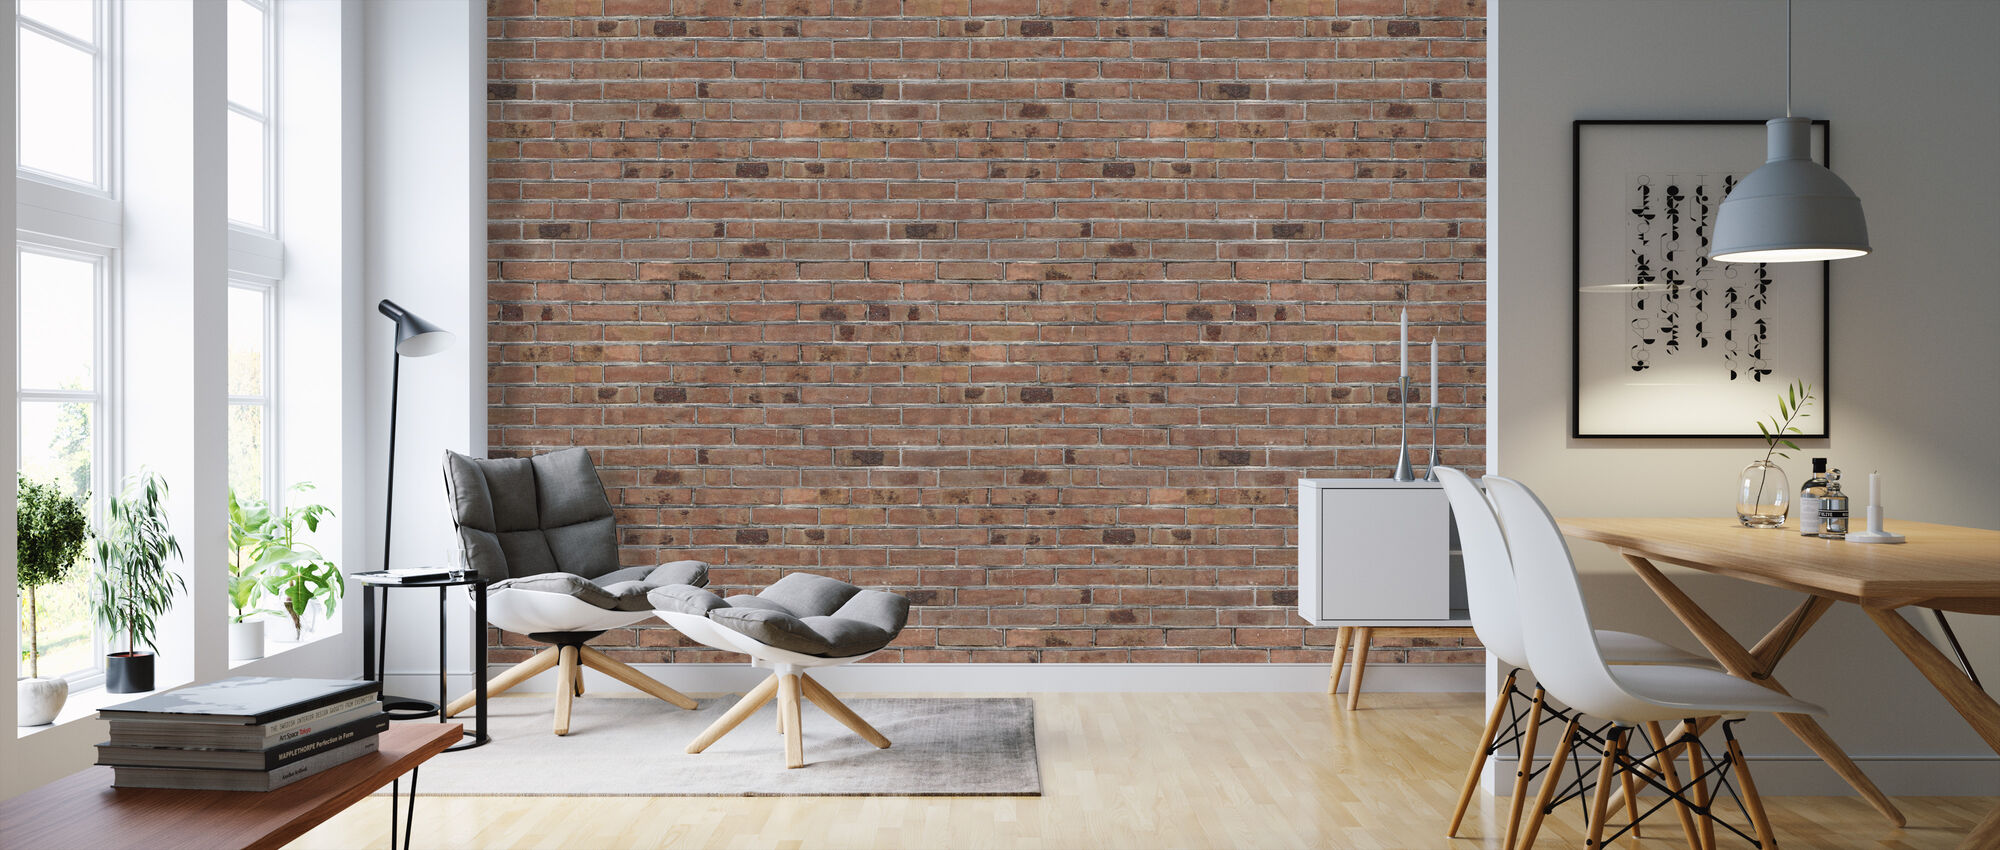 Spotted Brick Wall - Wallpaper - Living Room